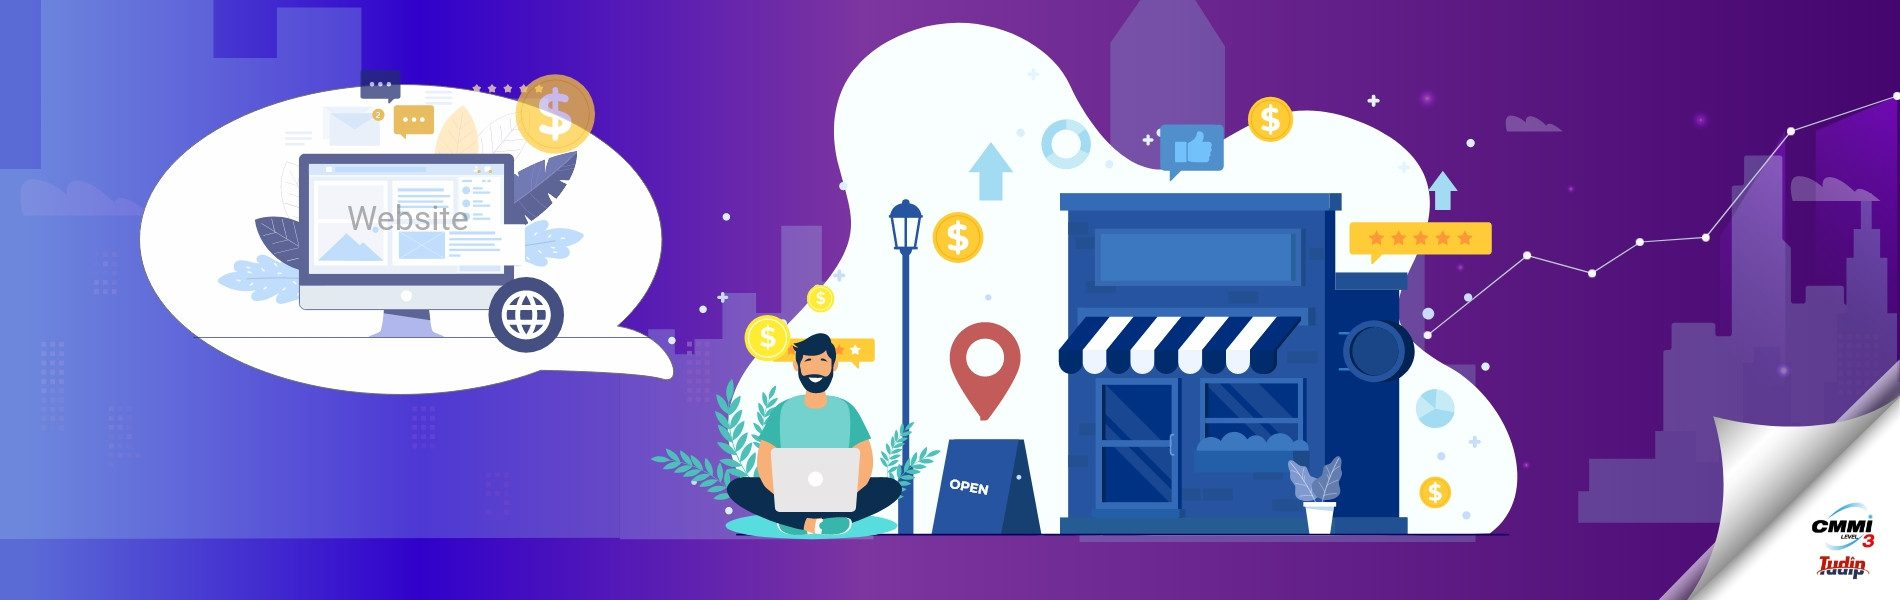 Why Should Small Businesses Localize Their Websites Properly?